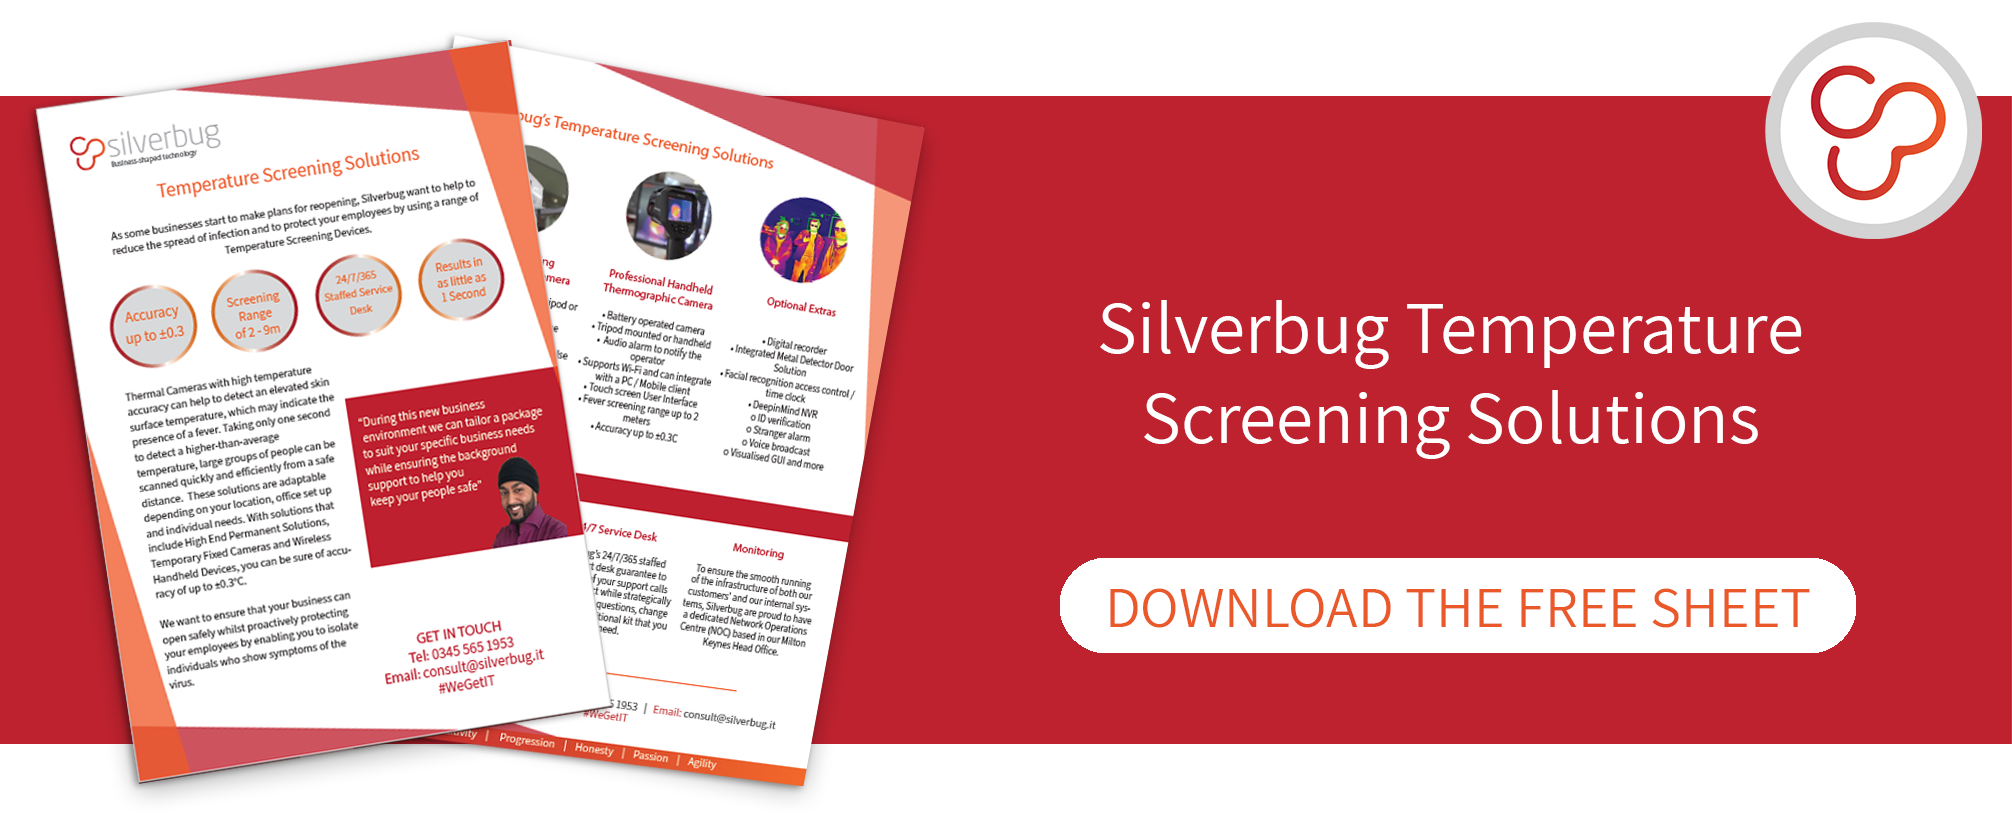 download the Silverbug temperature screening solutions information sheet